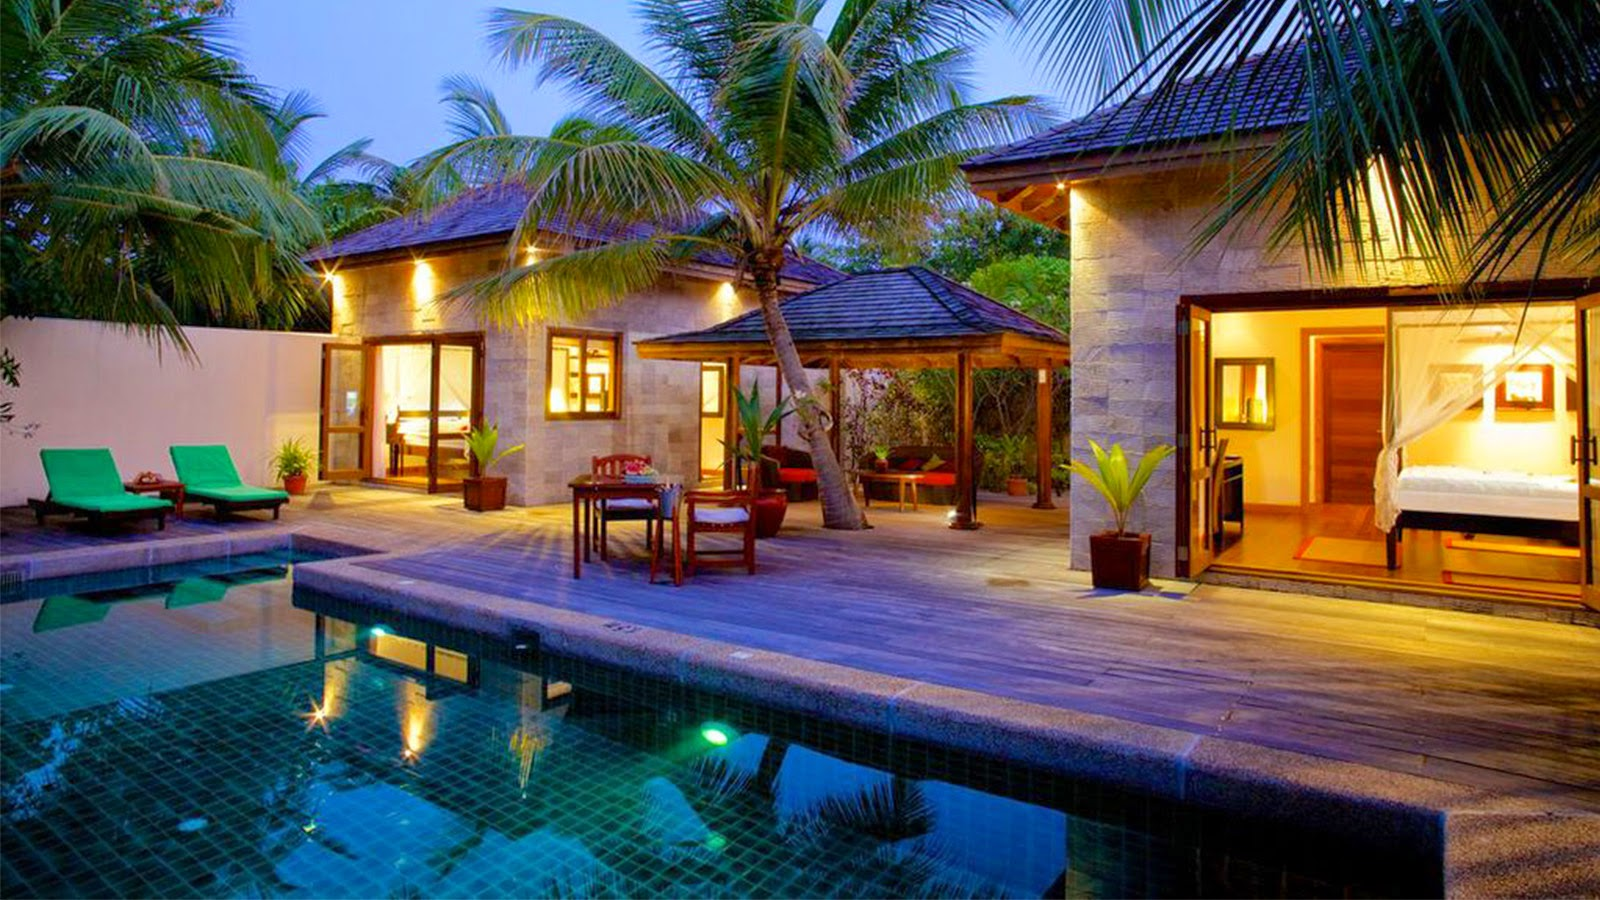 Luxury Pool Villas Maldives: Kuredu Maldives Resort & Spa- Maldives